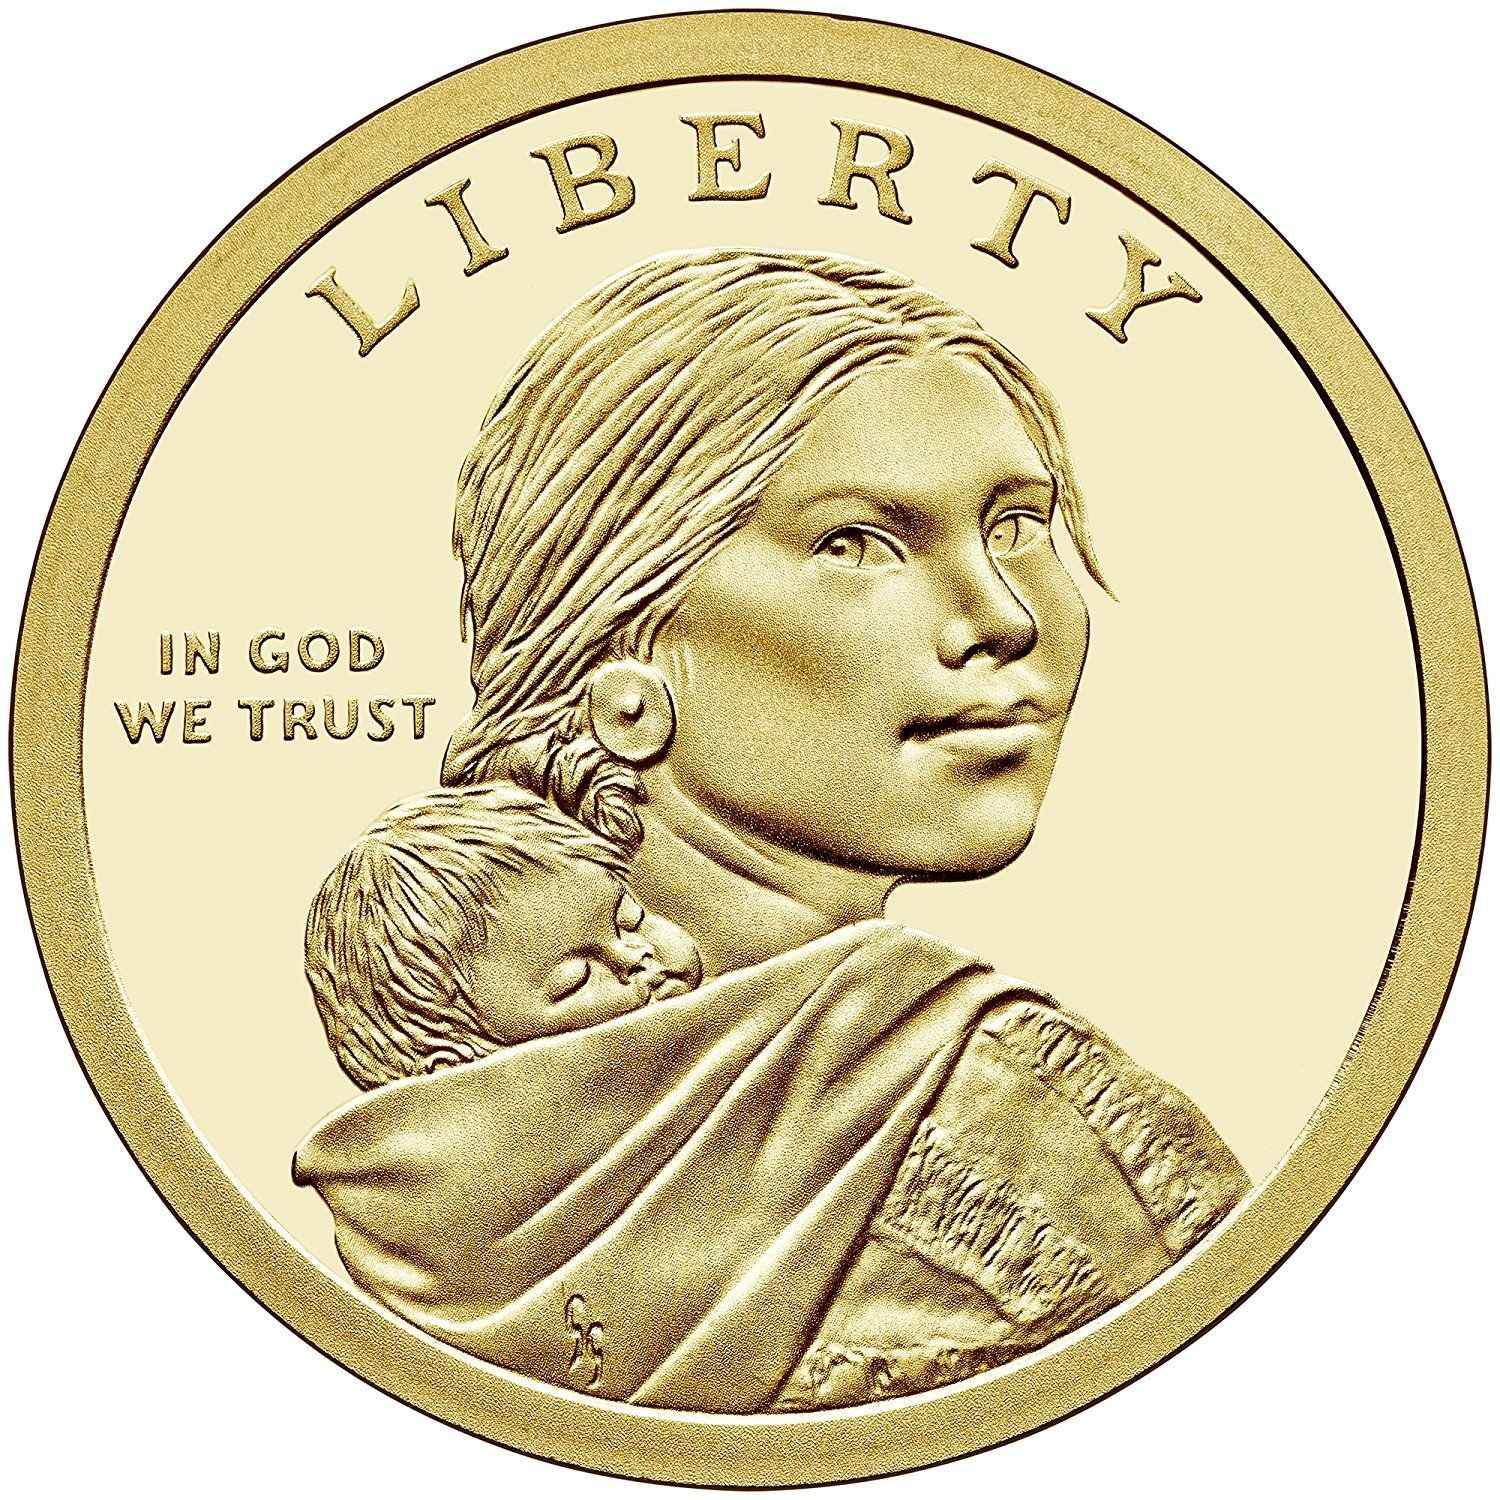 2015D United States Sacagawea $1 Dollar Coin Iron workers